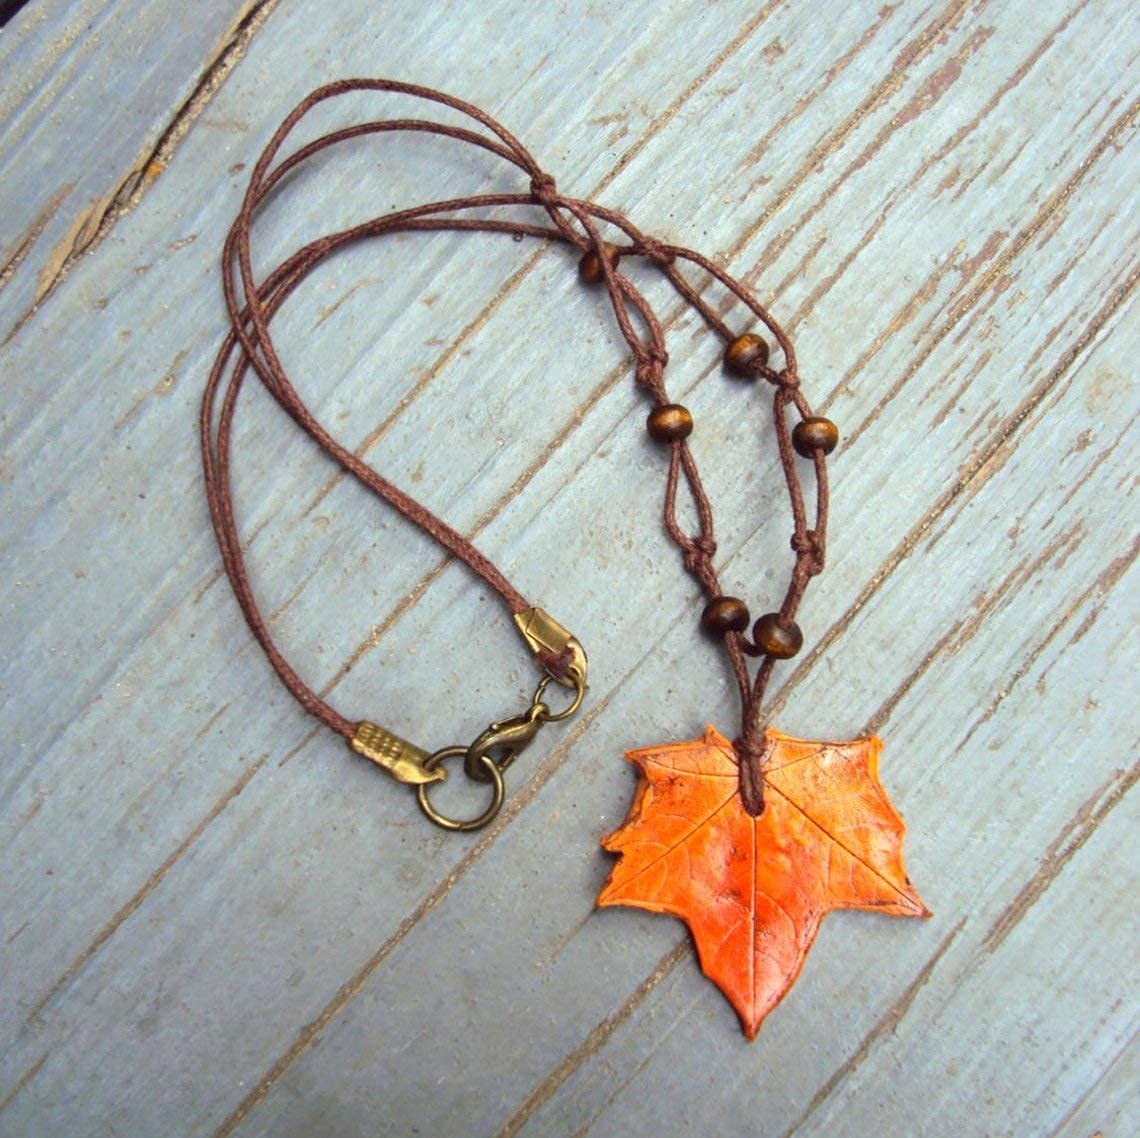 Changing Seasons Decay And Rebirth Cottagecore Minimalist Ode To Autumn Pendant Necklace With Real Dehydrated Leaves From Western Oregon